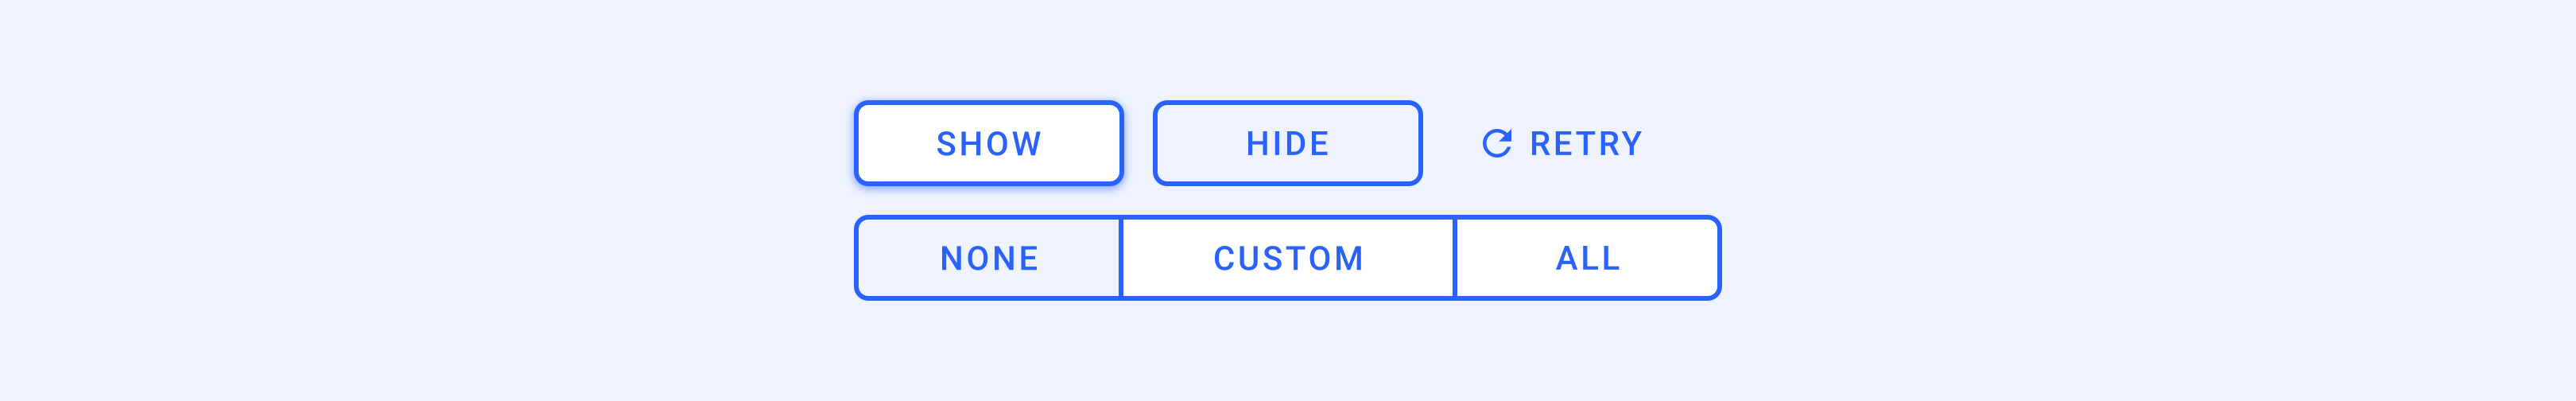 Hands-on with Material Components for Android: Buttons